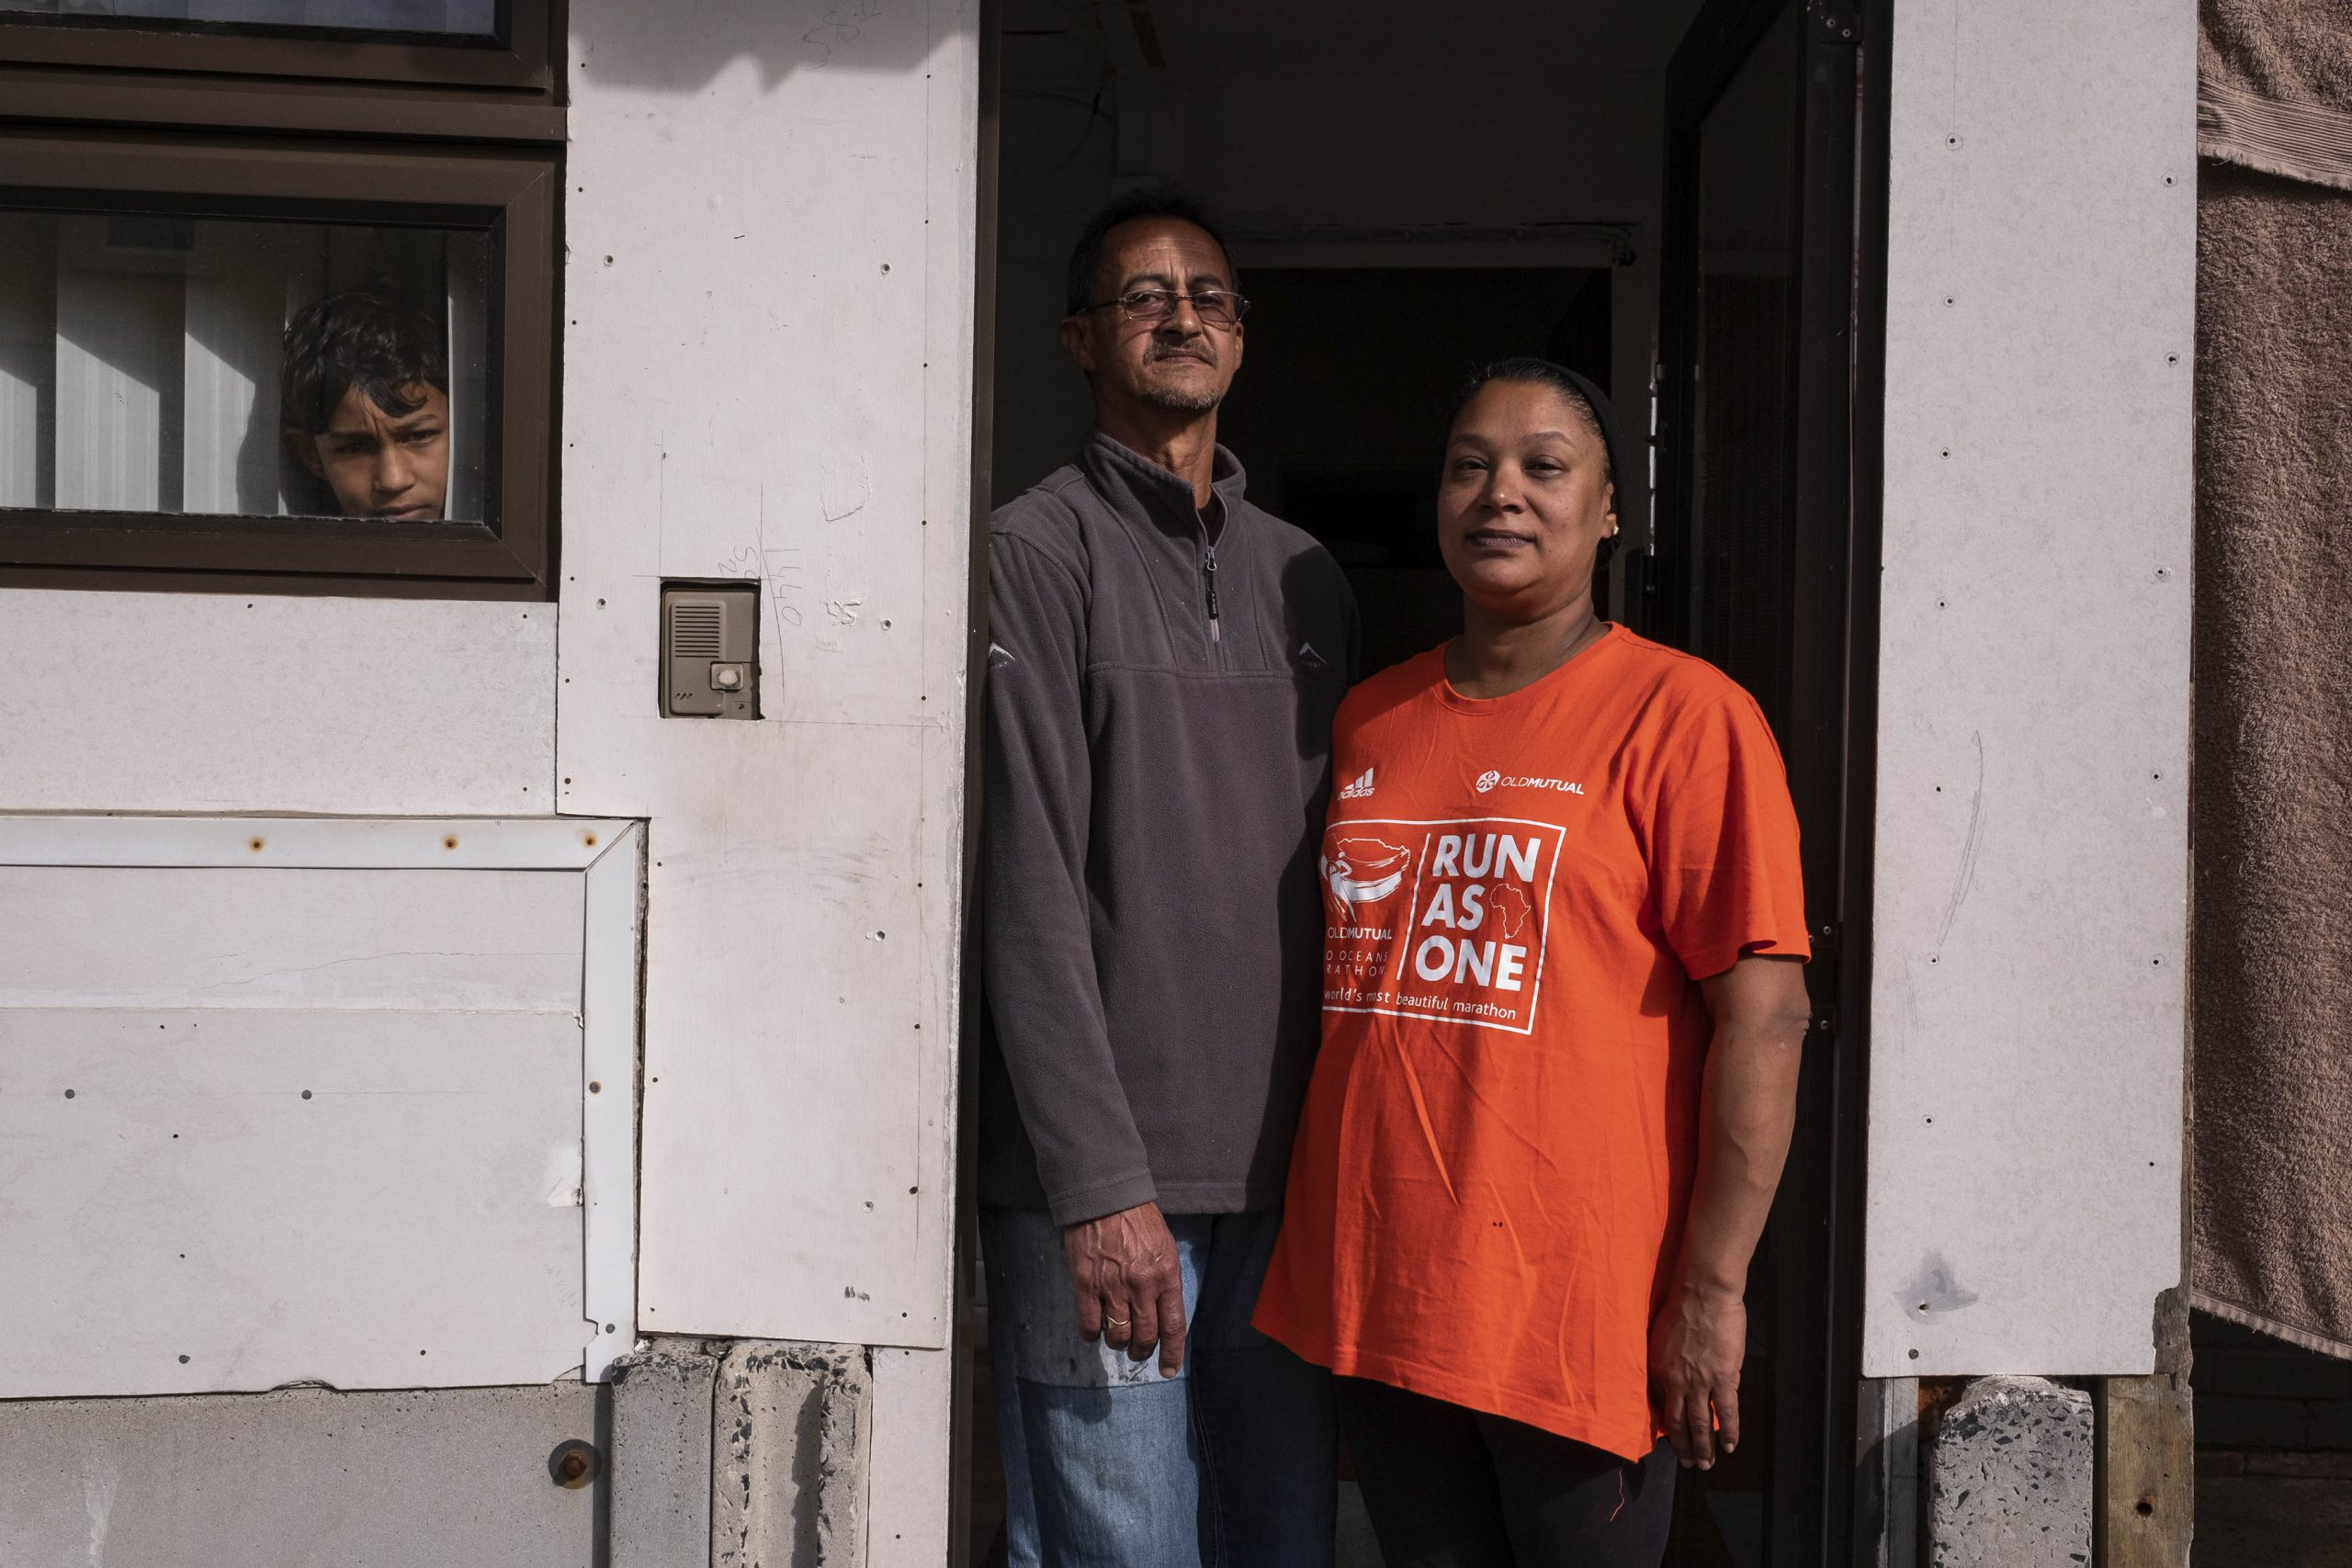 13 June 2020: Richard Holmes and his wife Liesl Arendse-Holmes alerted Ginola Phillips about his home. The police almost shot Arendse-Holmes, an asthmatic, with a rubber bullet and let off a tear gas canister outside her window.